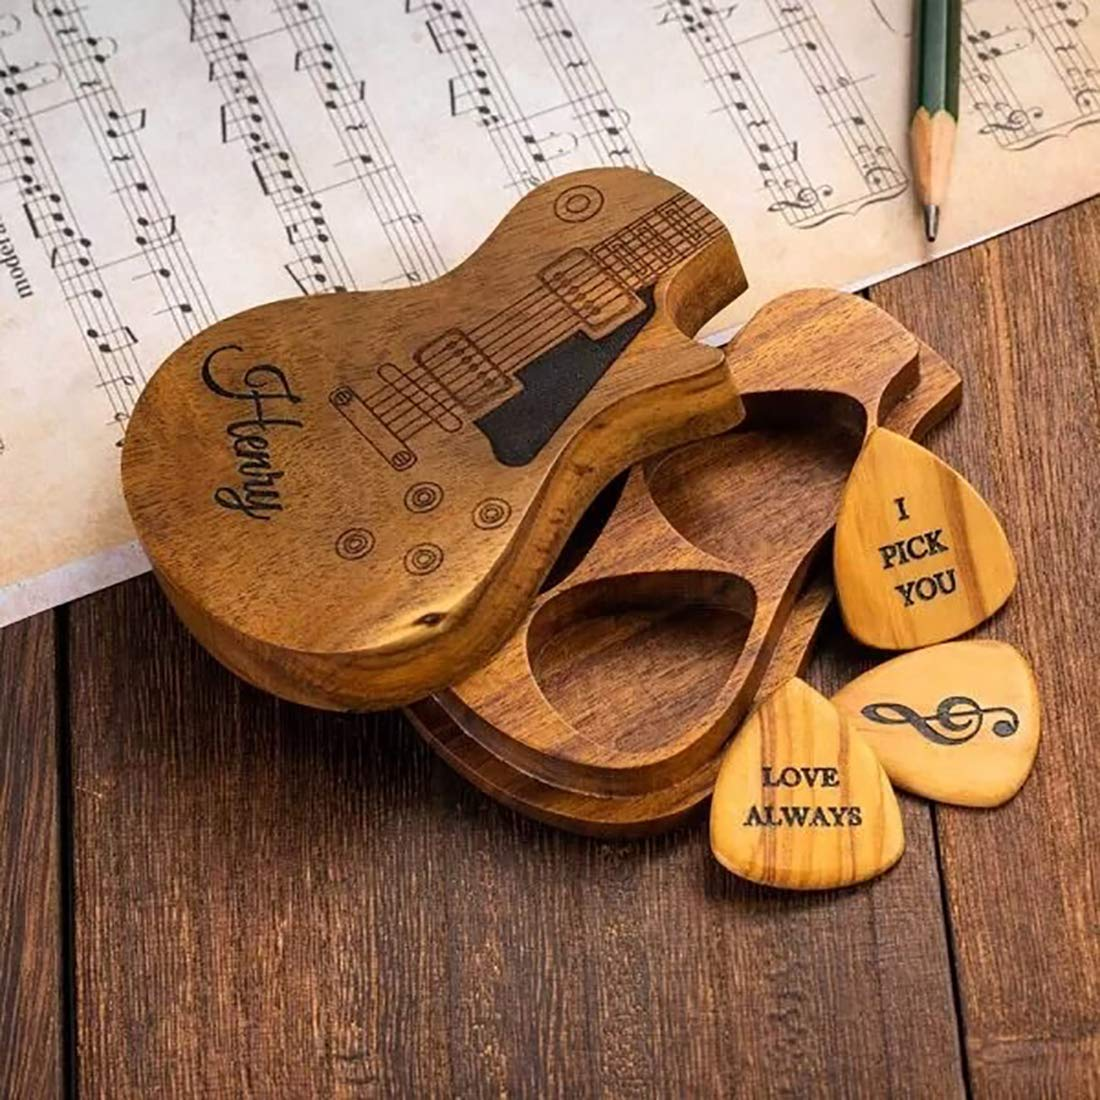 Customizable Guitar Pick Holder Three Personalized Manufacturer regenerated Max 86% OFF product Picks,Ph